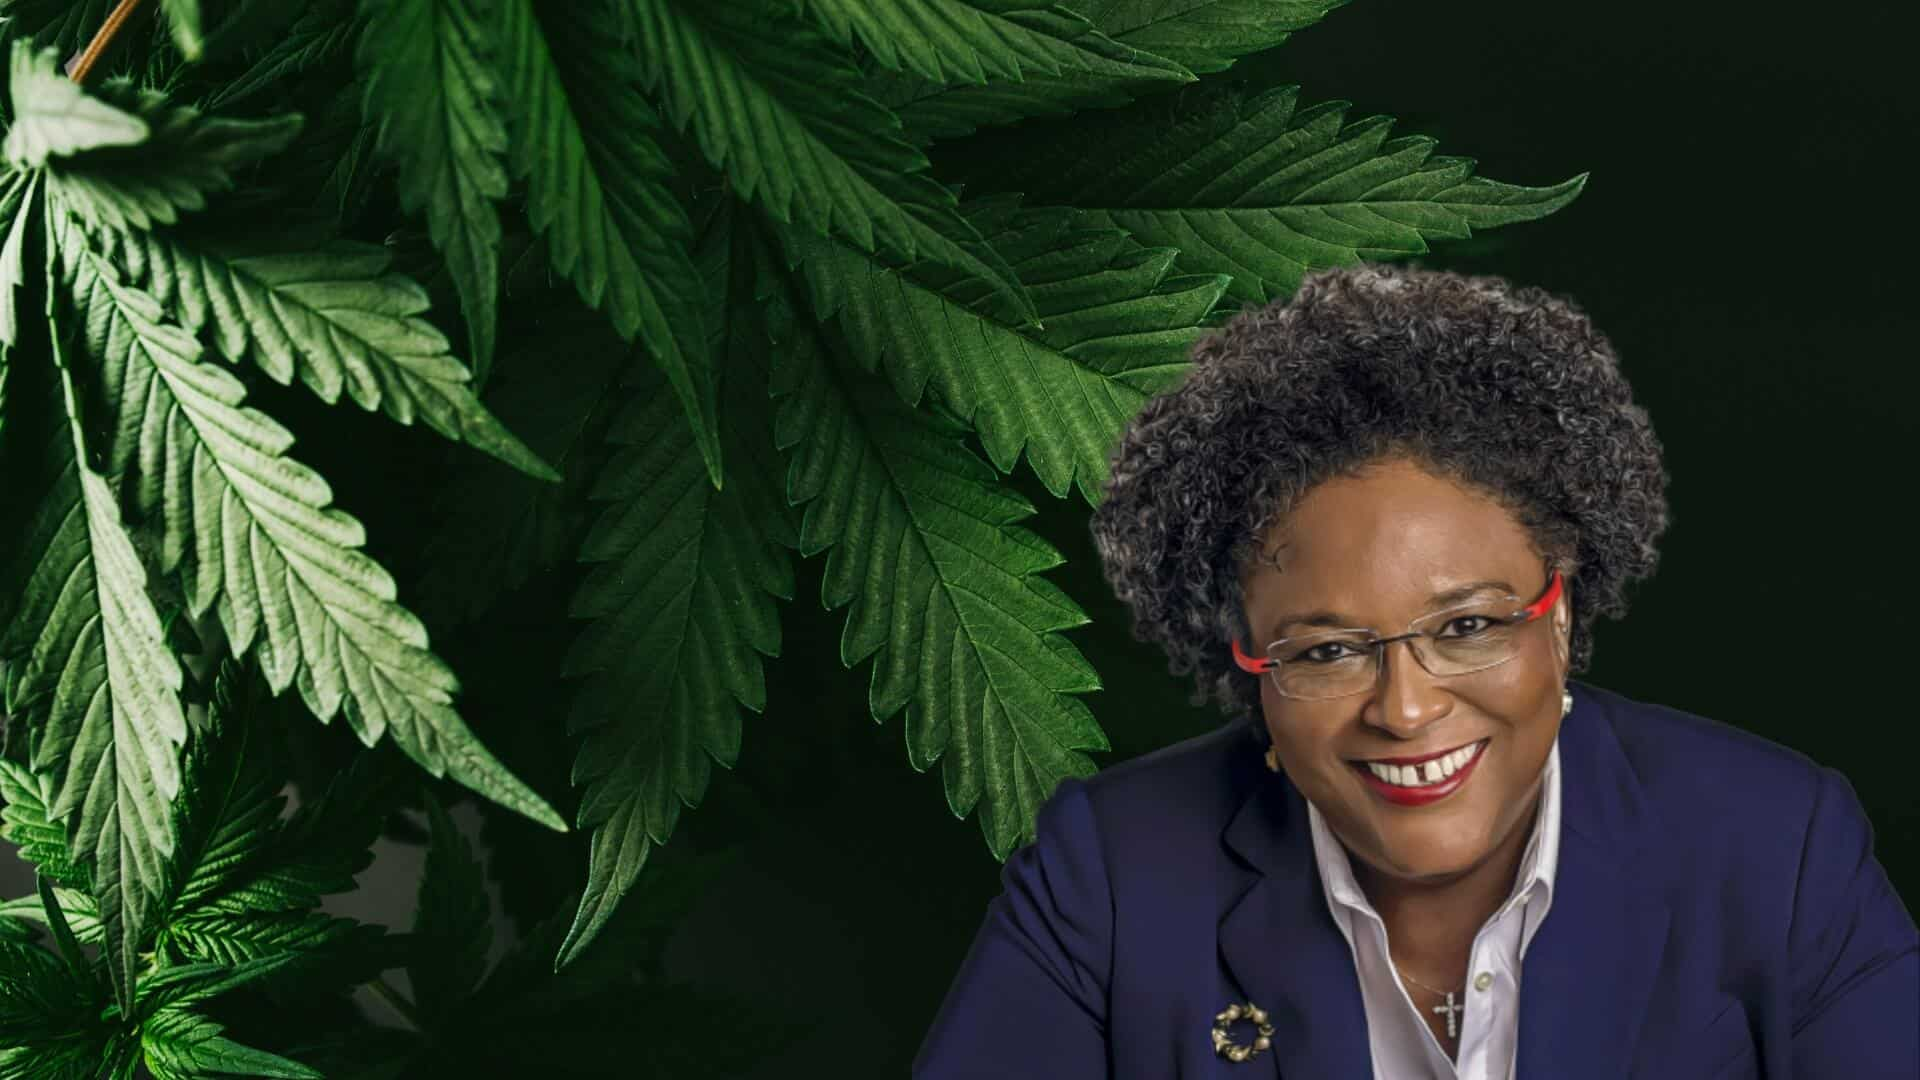 PM Mia Mottley to Seek General Public Consent Before Legalizing Marijuana  for Medical Purpose